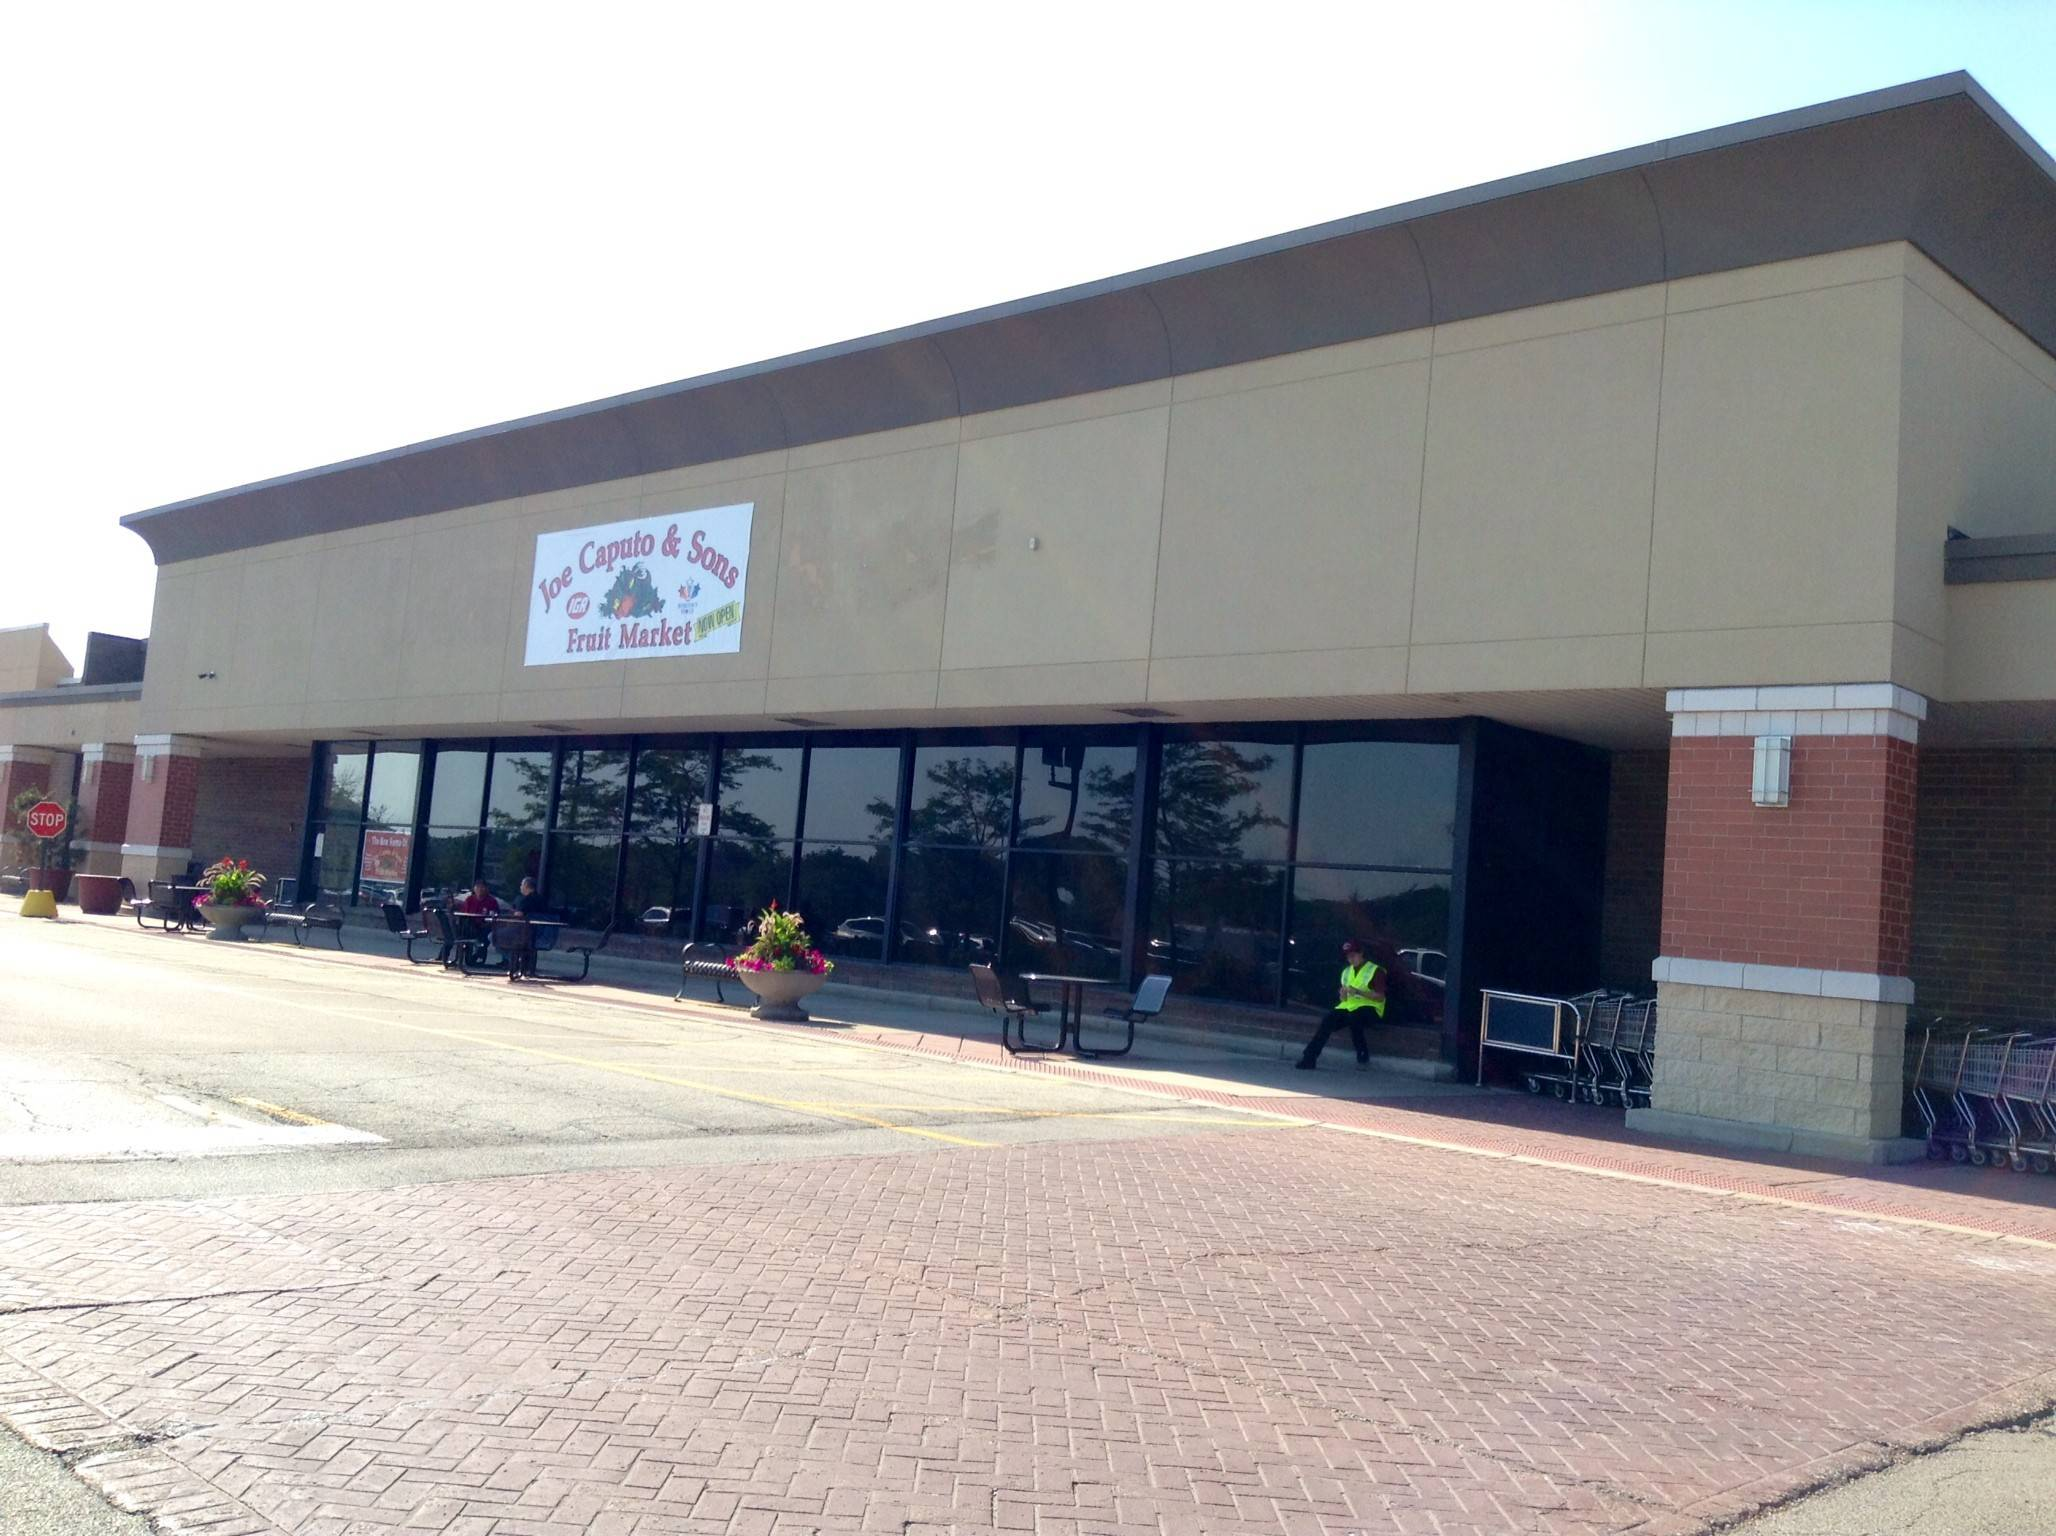 Joe Caputo & Sons Fruit Market IGA opened Friday in the former Dominick's at 325 Palatine Road.